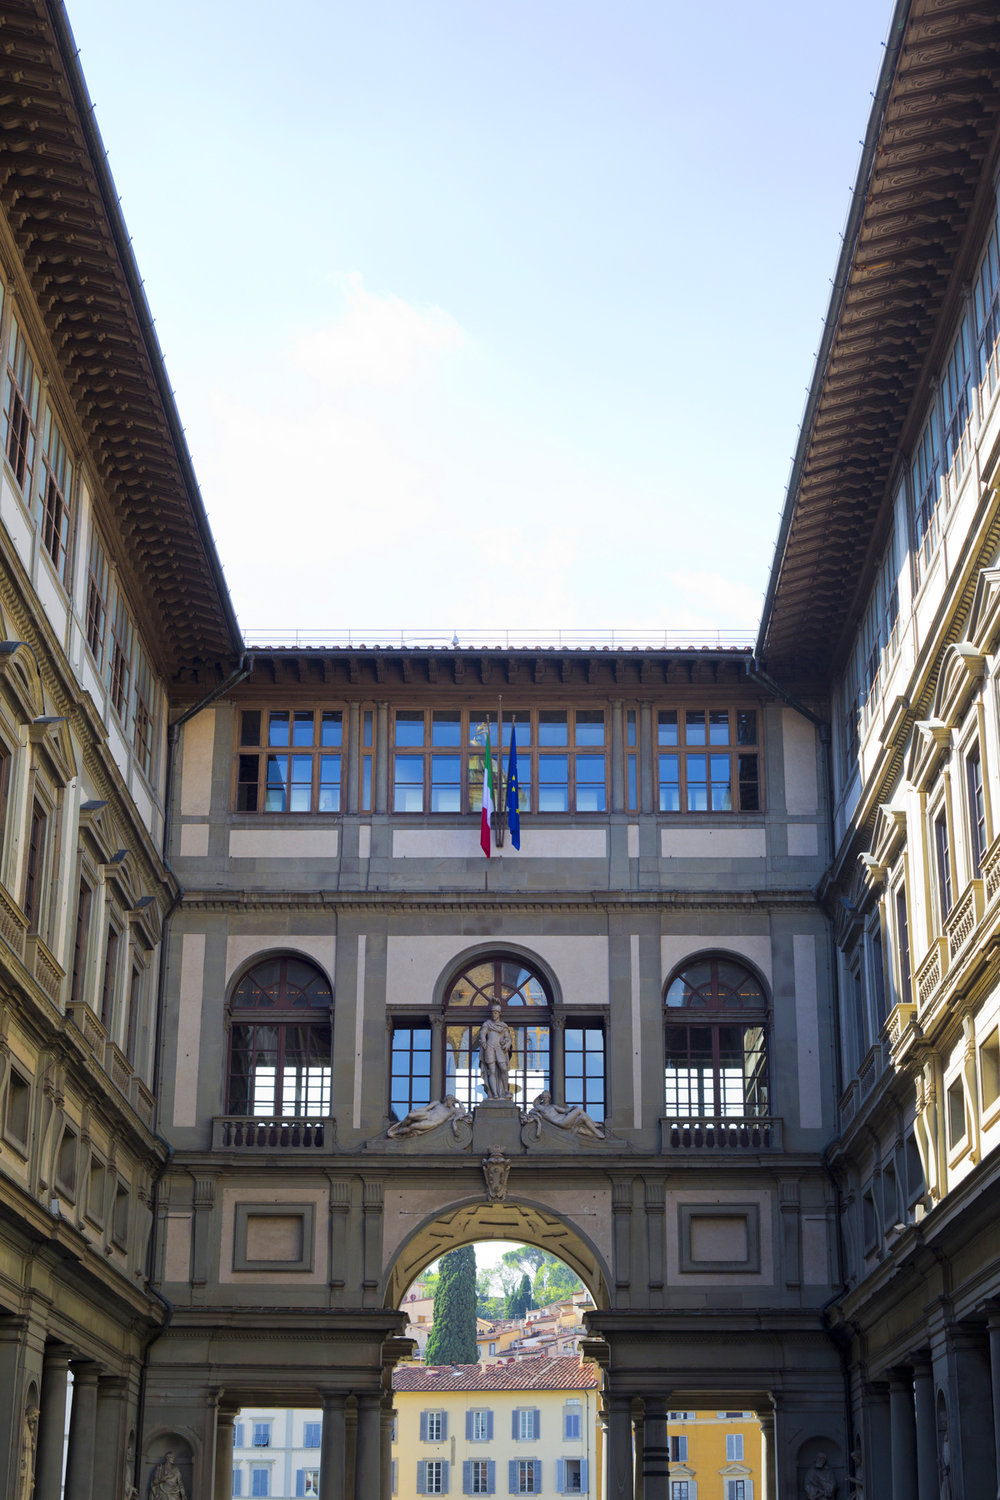 Just outside the Uffizi Gallery